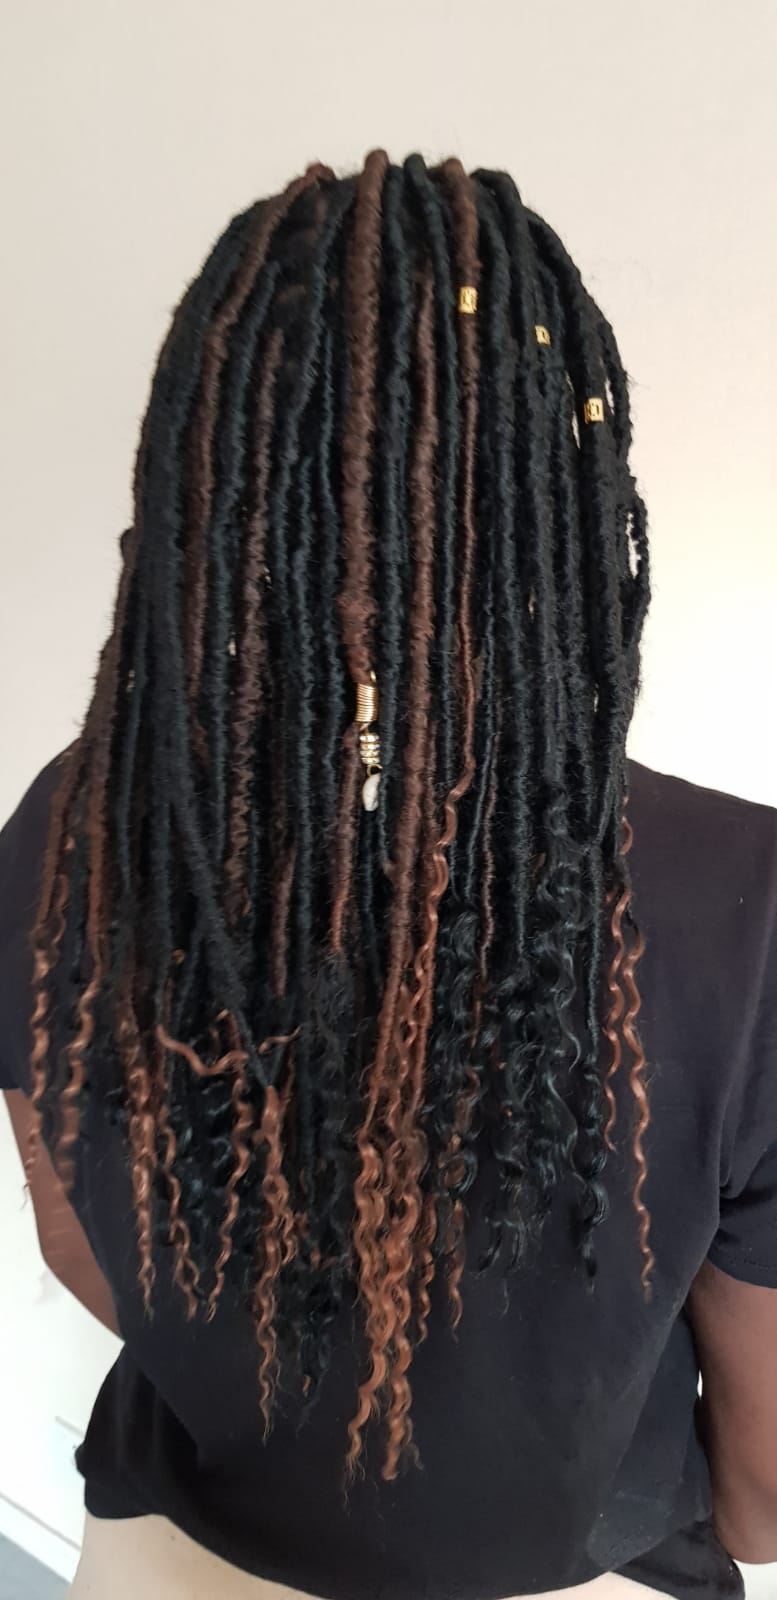 salon de coiffure afro tresse tresses box braids crochet braids vanilles tissages paris 75 77 78 91 92 93 94 95 GCKXBTFO